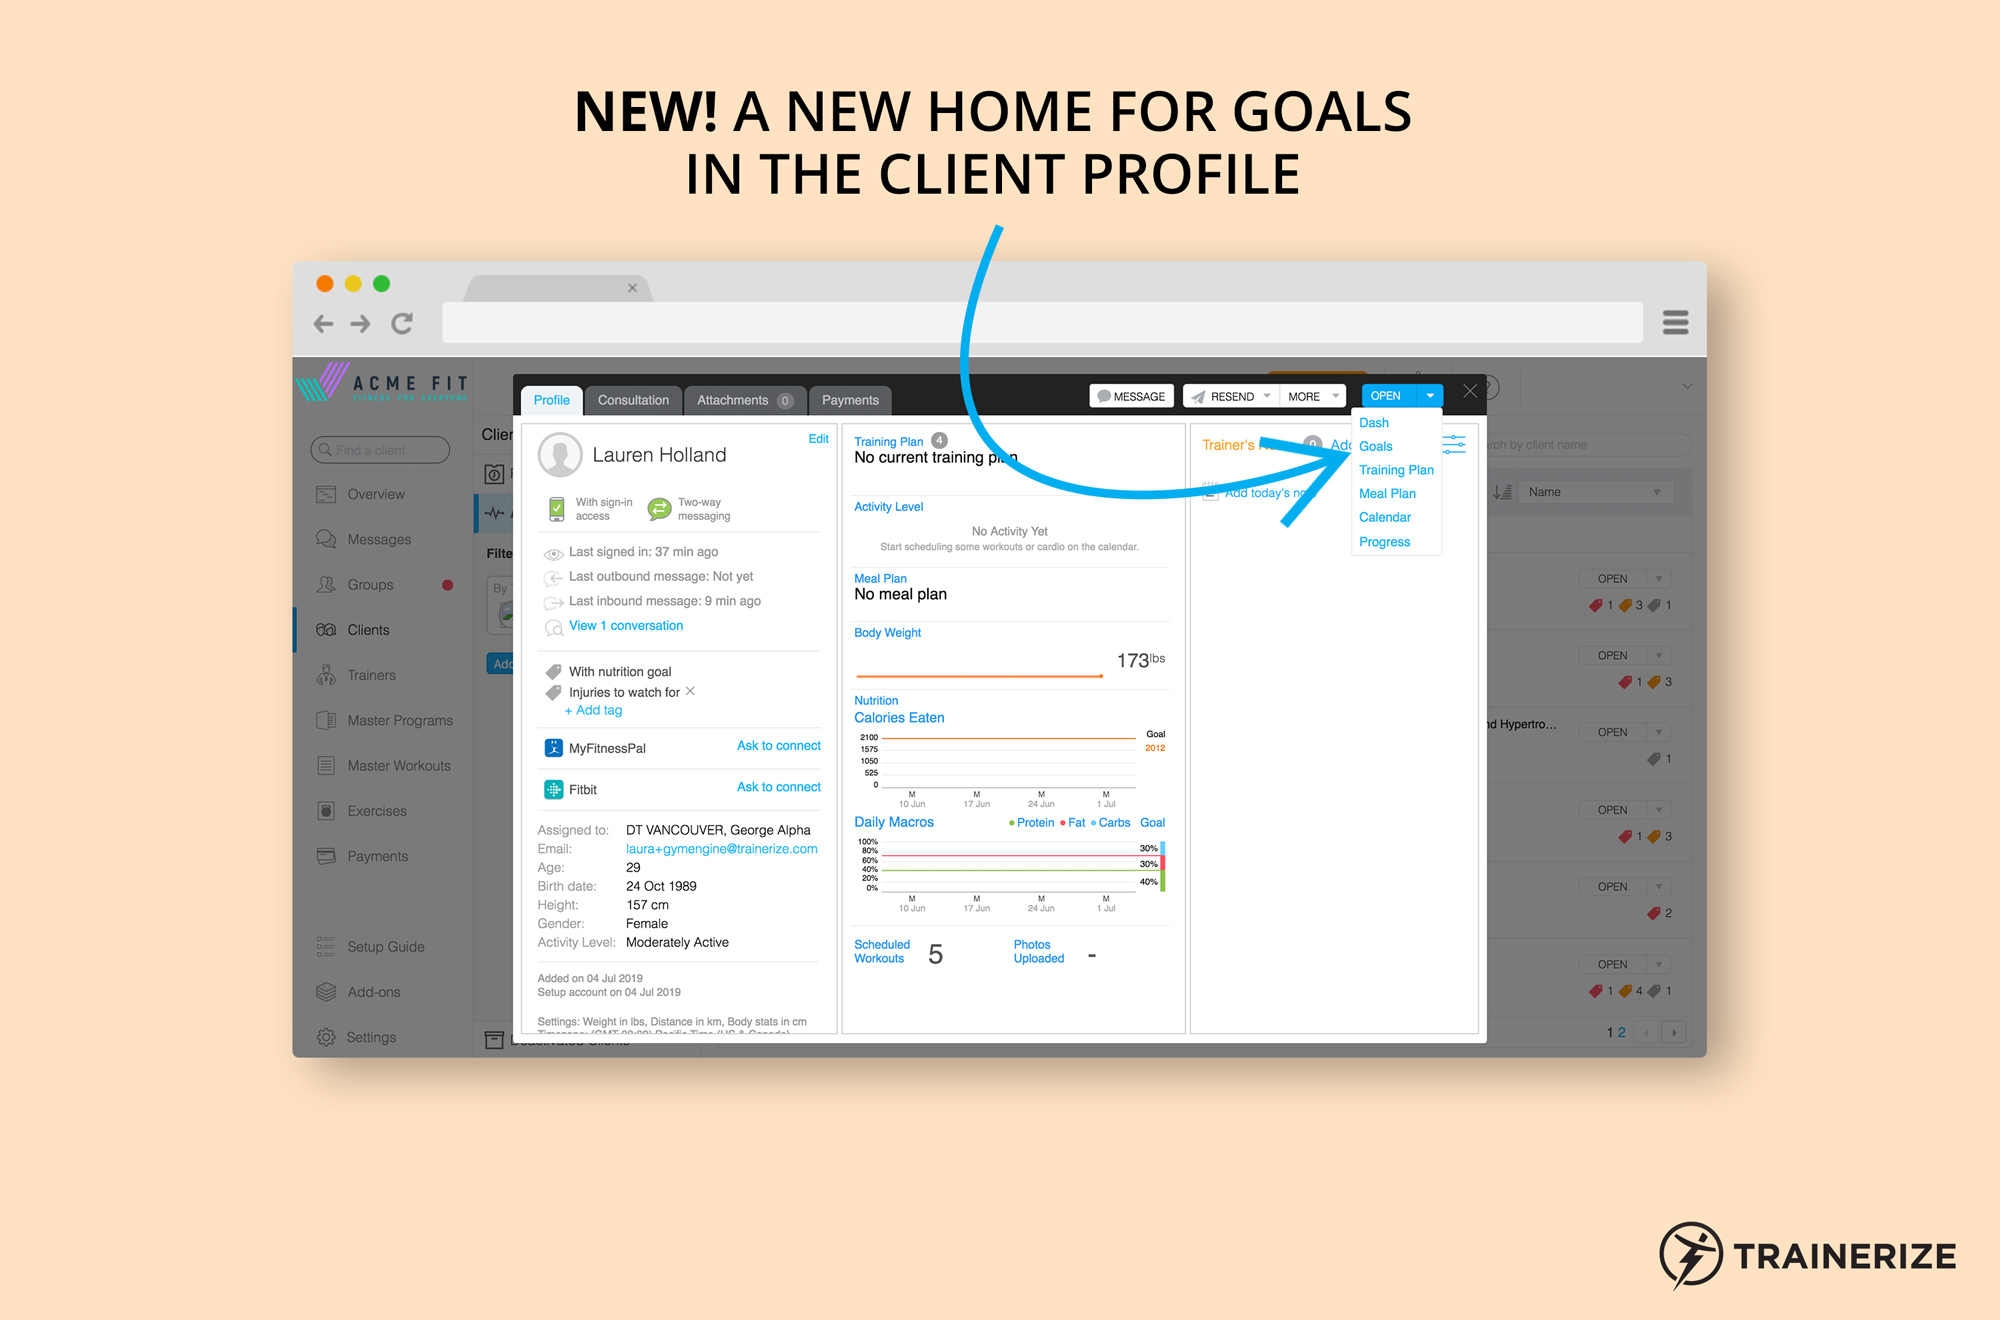 New in Trainerize: A New Home for Goals in the Client Profile